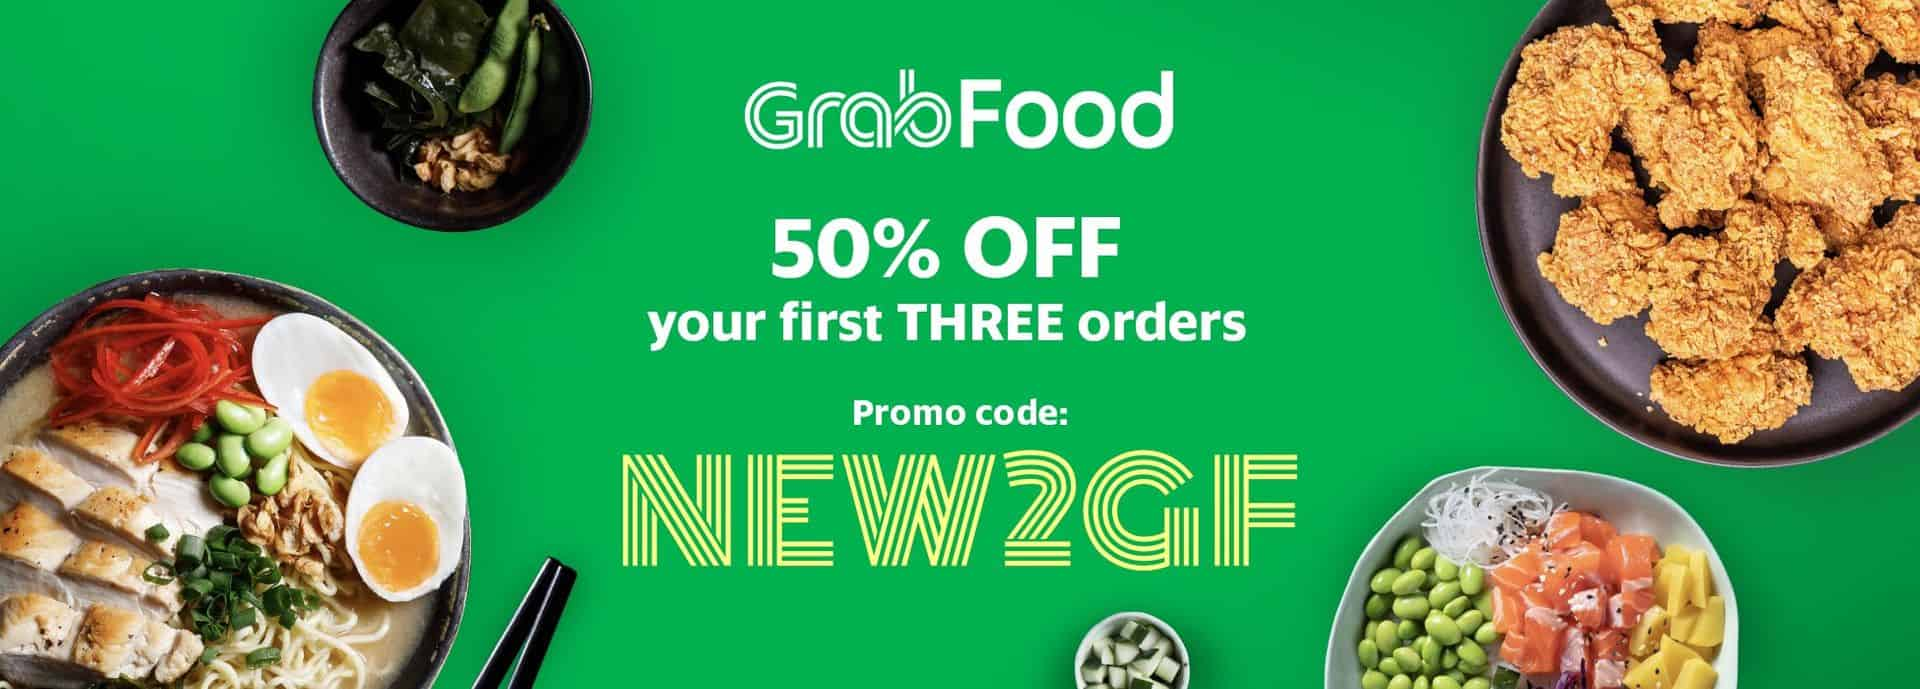 Save 50% on your first 3 GrabFood orders! | Grab MY